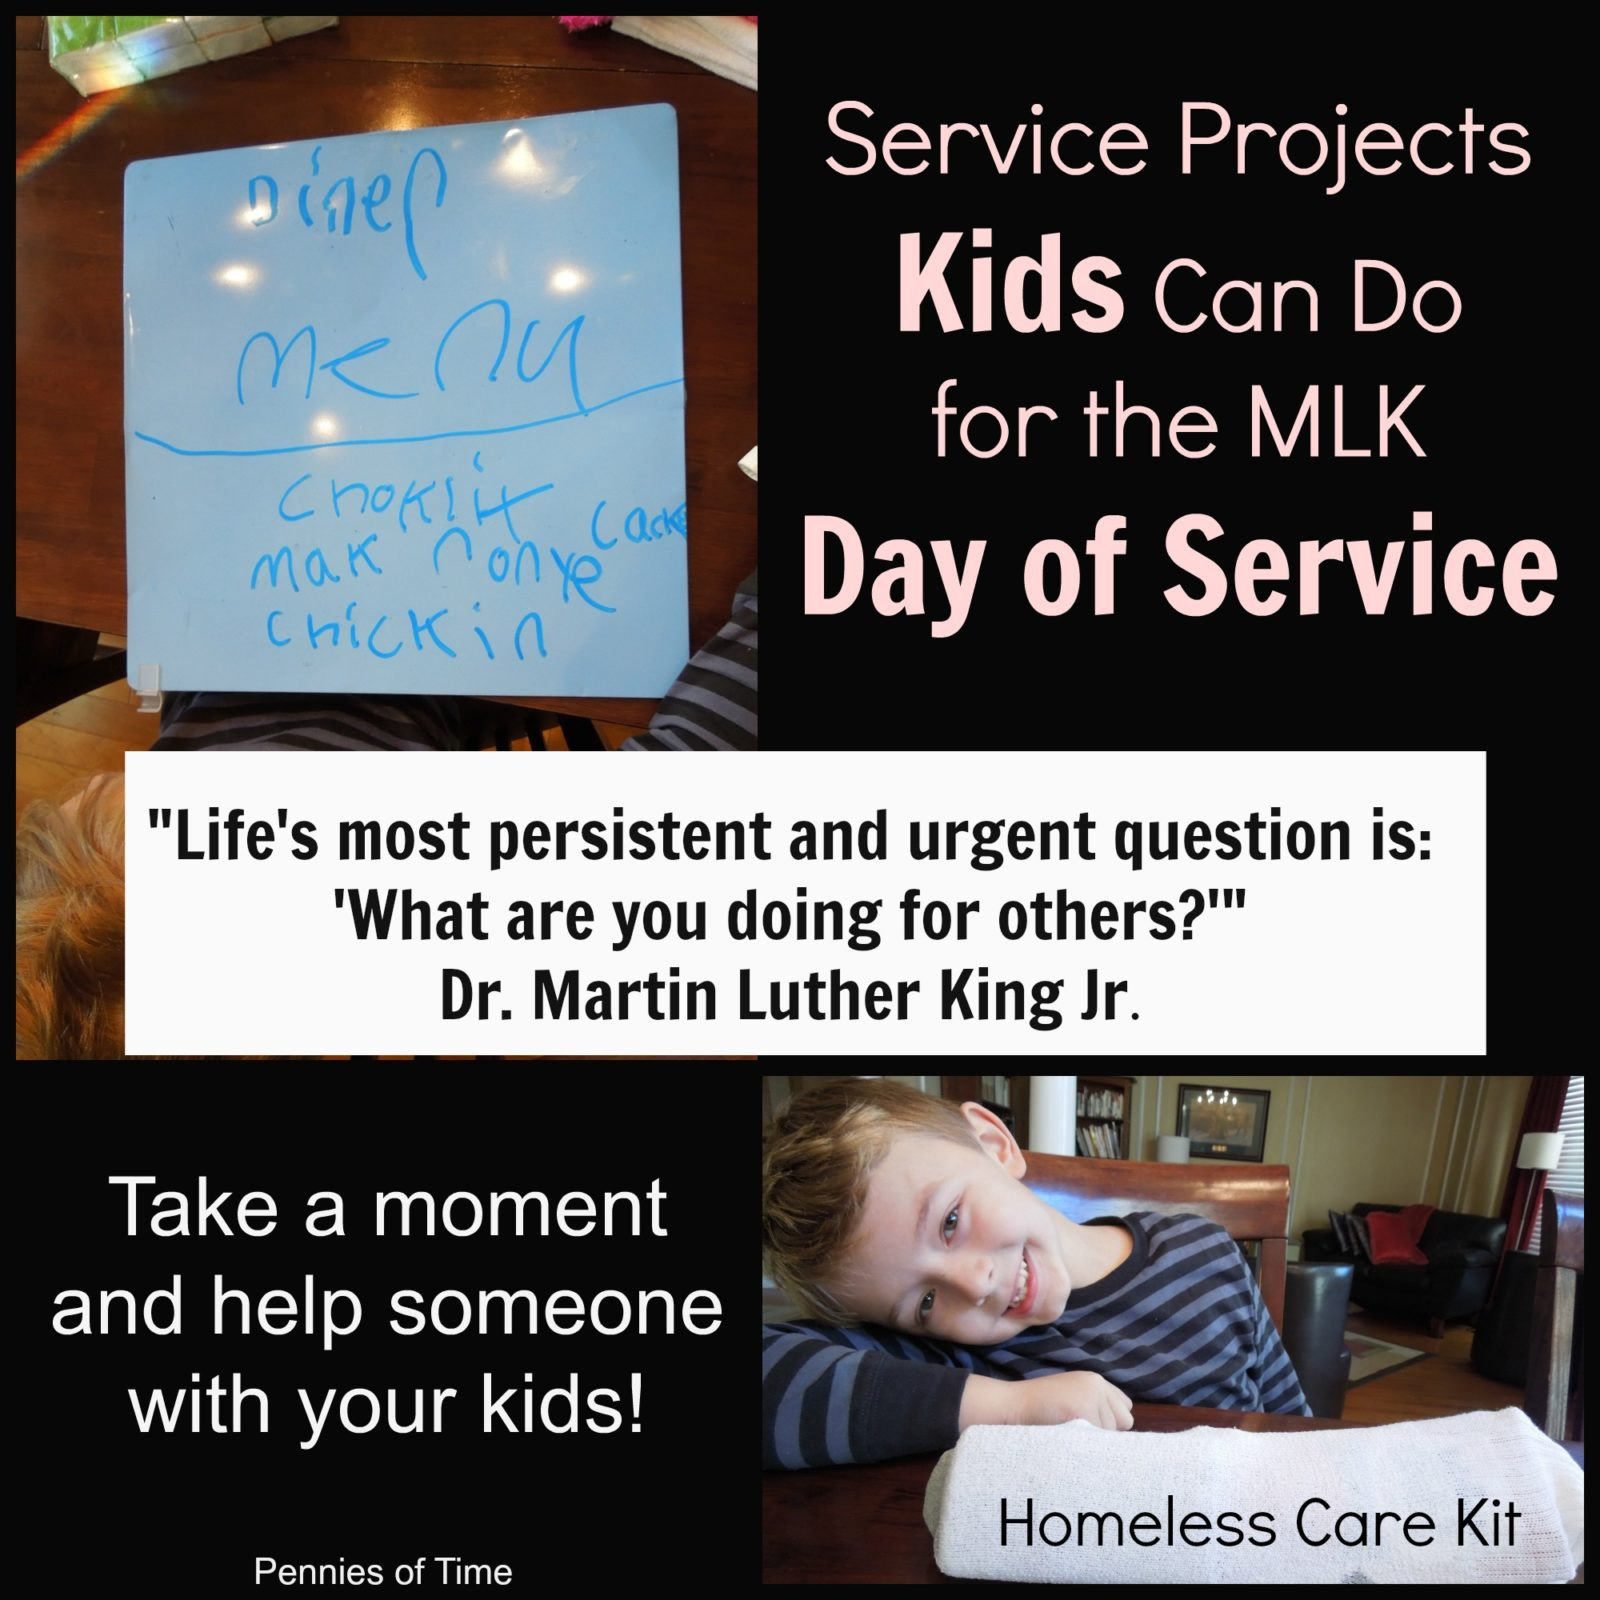 service projects for kids service projects to help the elderly